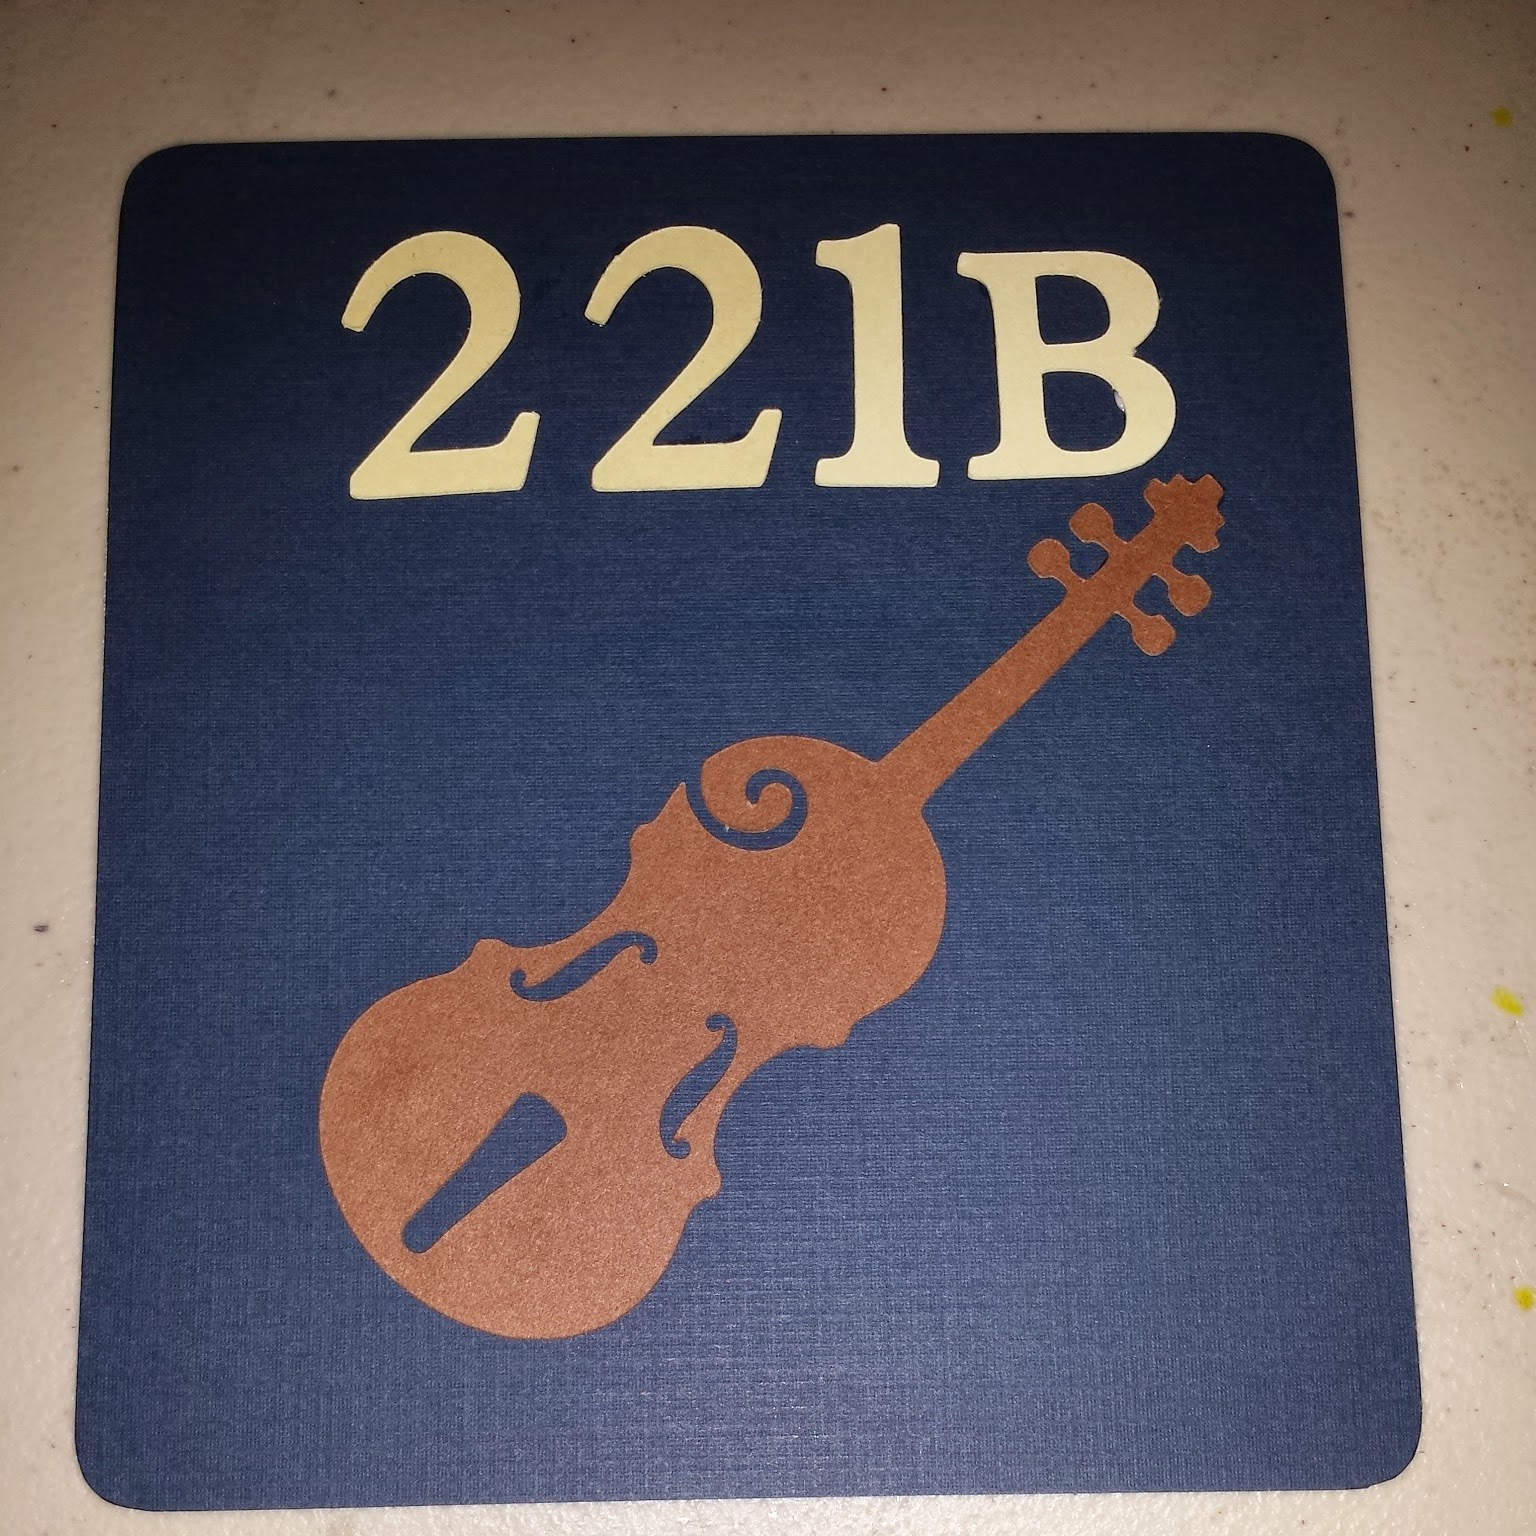 """221B"" with Violin hand fan base for BBC Sherlock themed party favor"